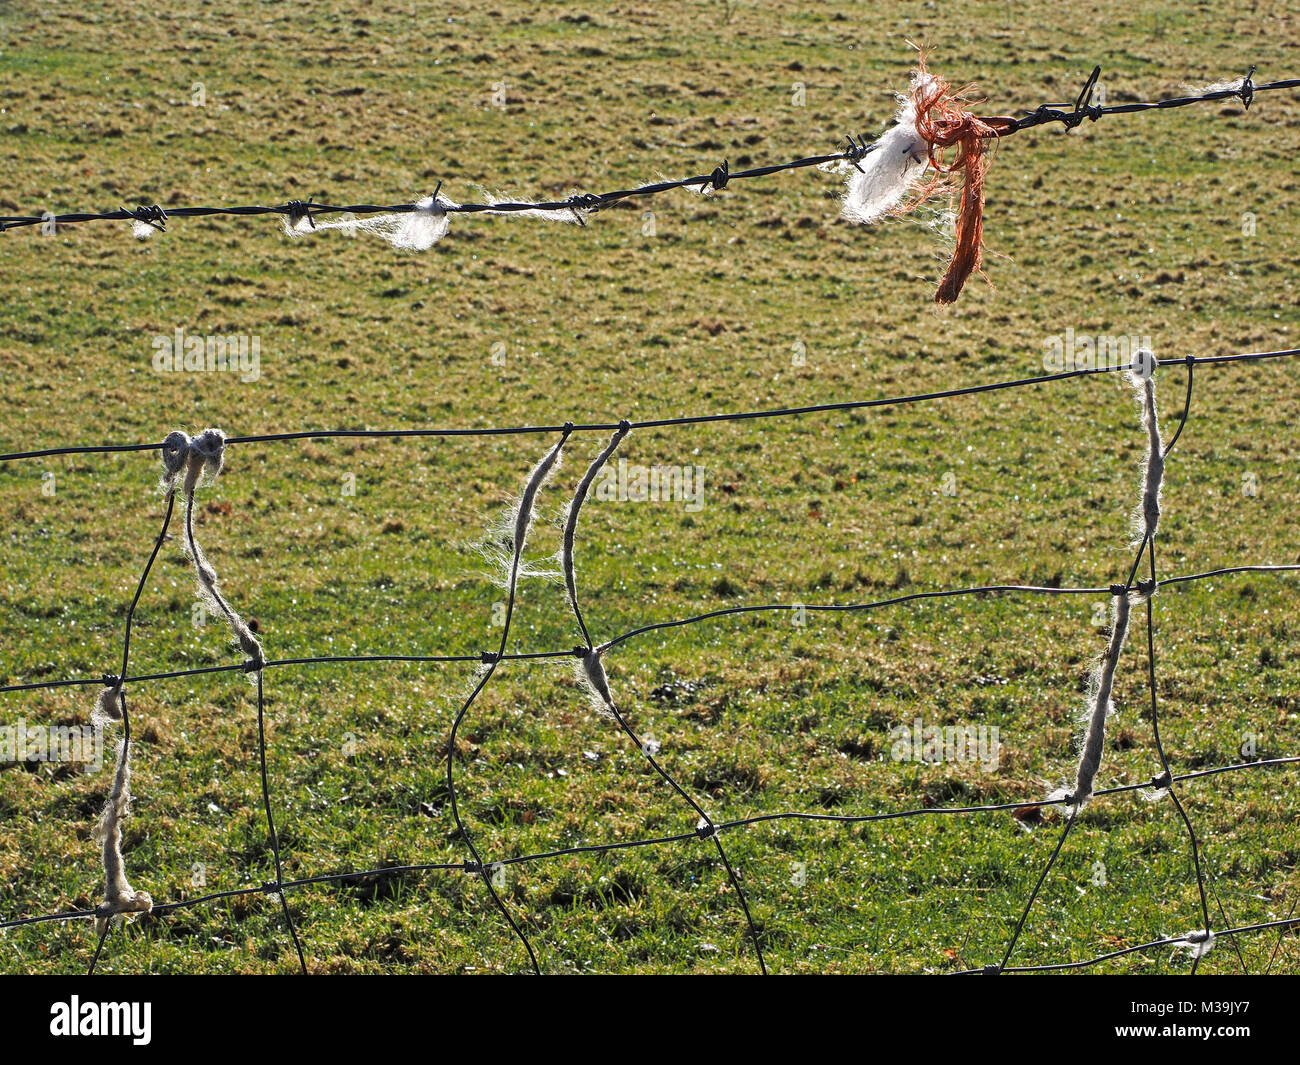 orange twine & strands of wool caught on barbed wire fence with ...